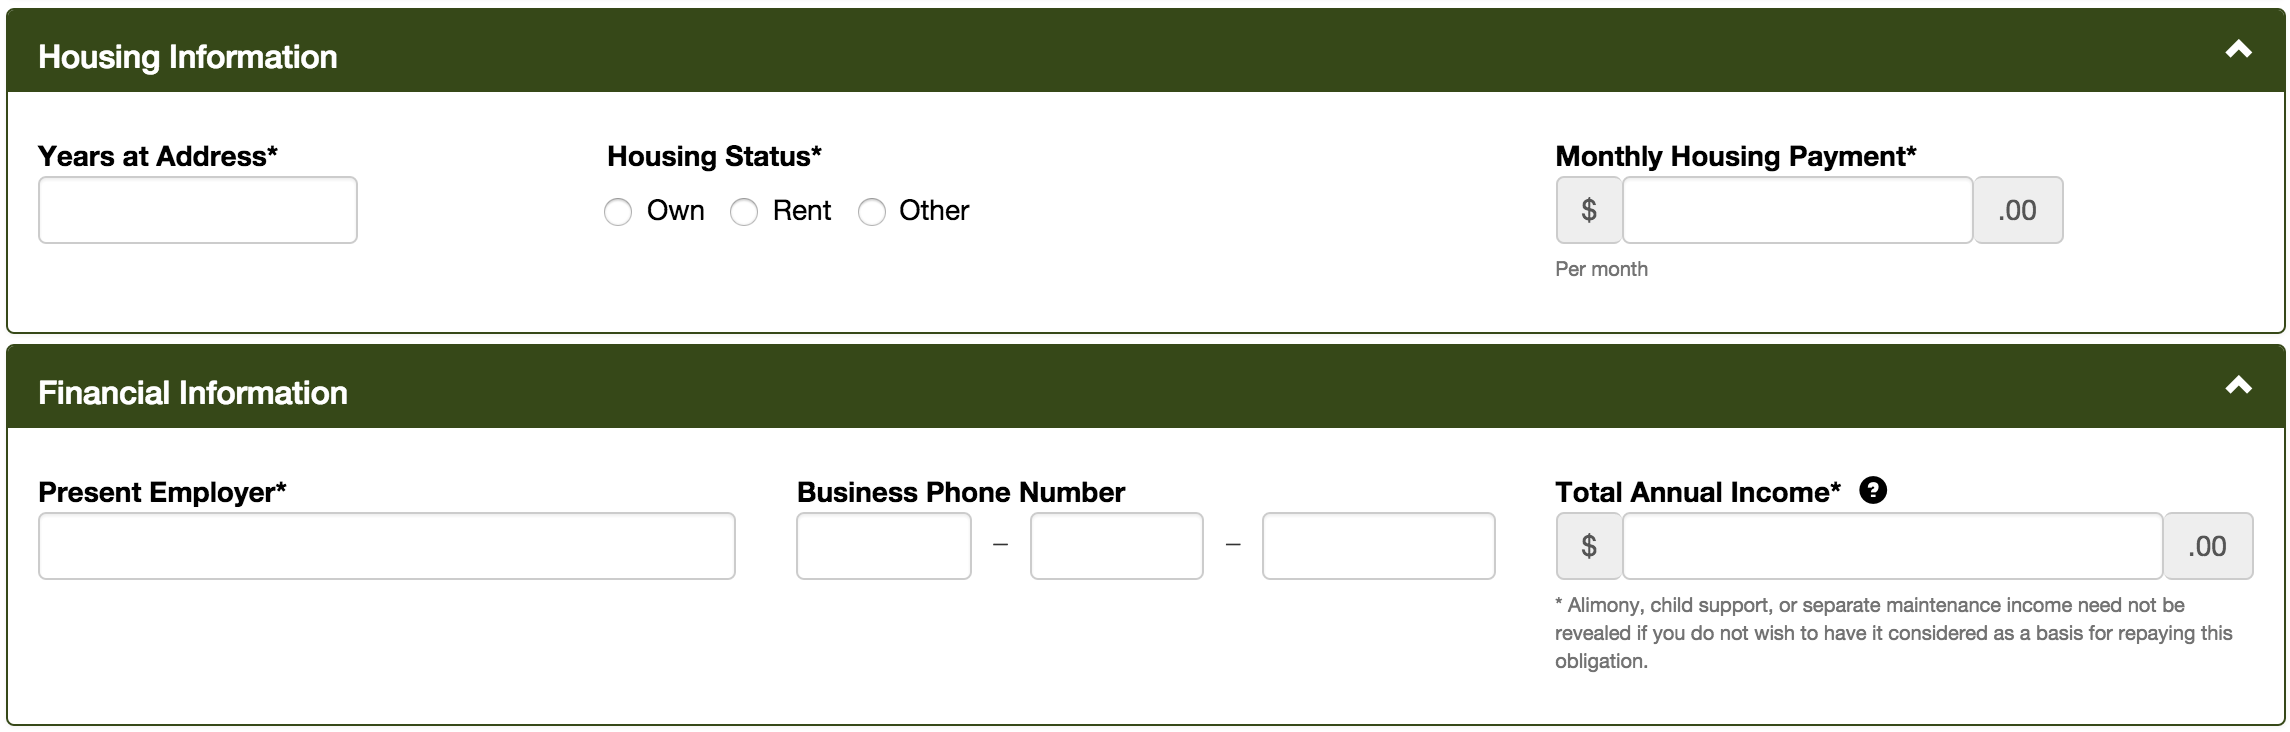 How to Apply for the Ducks Unlimited Visa Credit Card